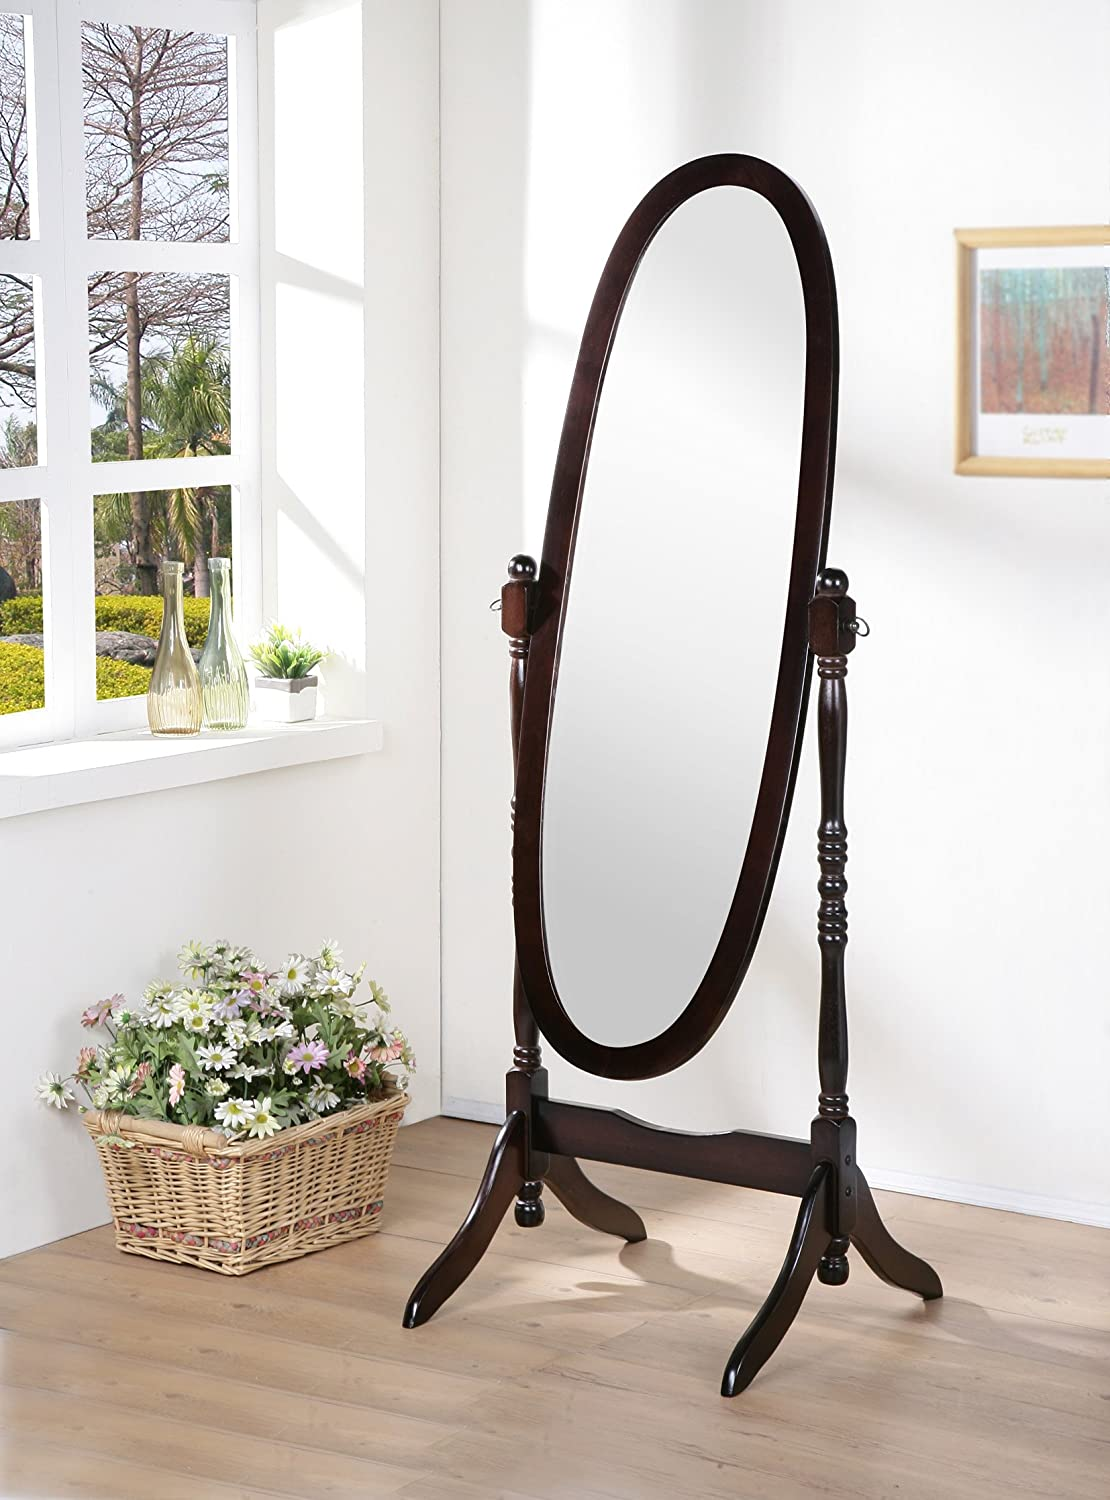 Wooden Cheval Floor Mirror, Espresso Finish eHomeProducts